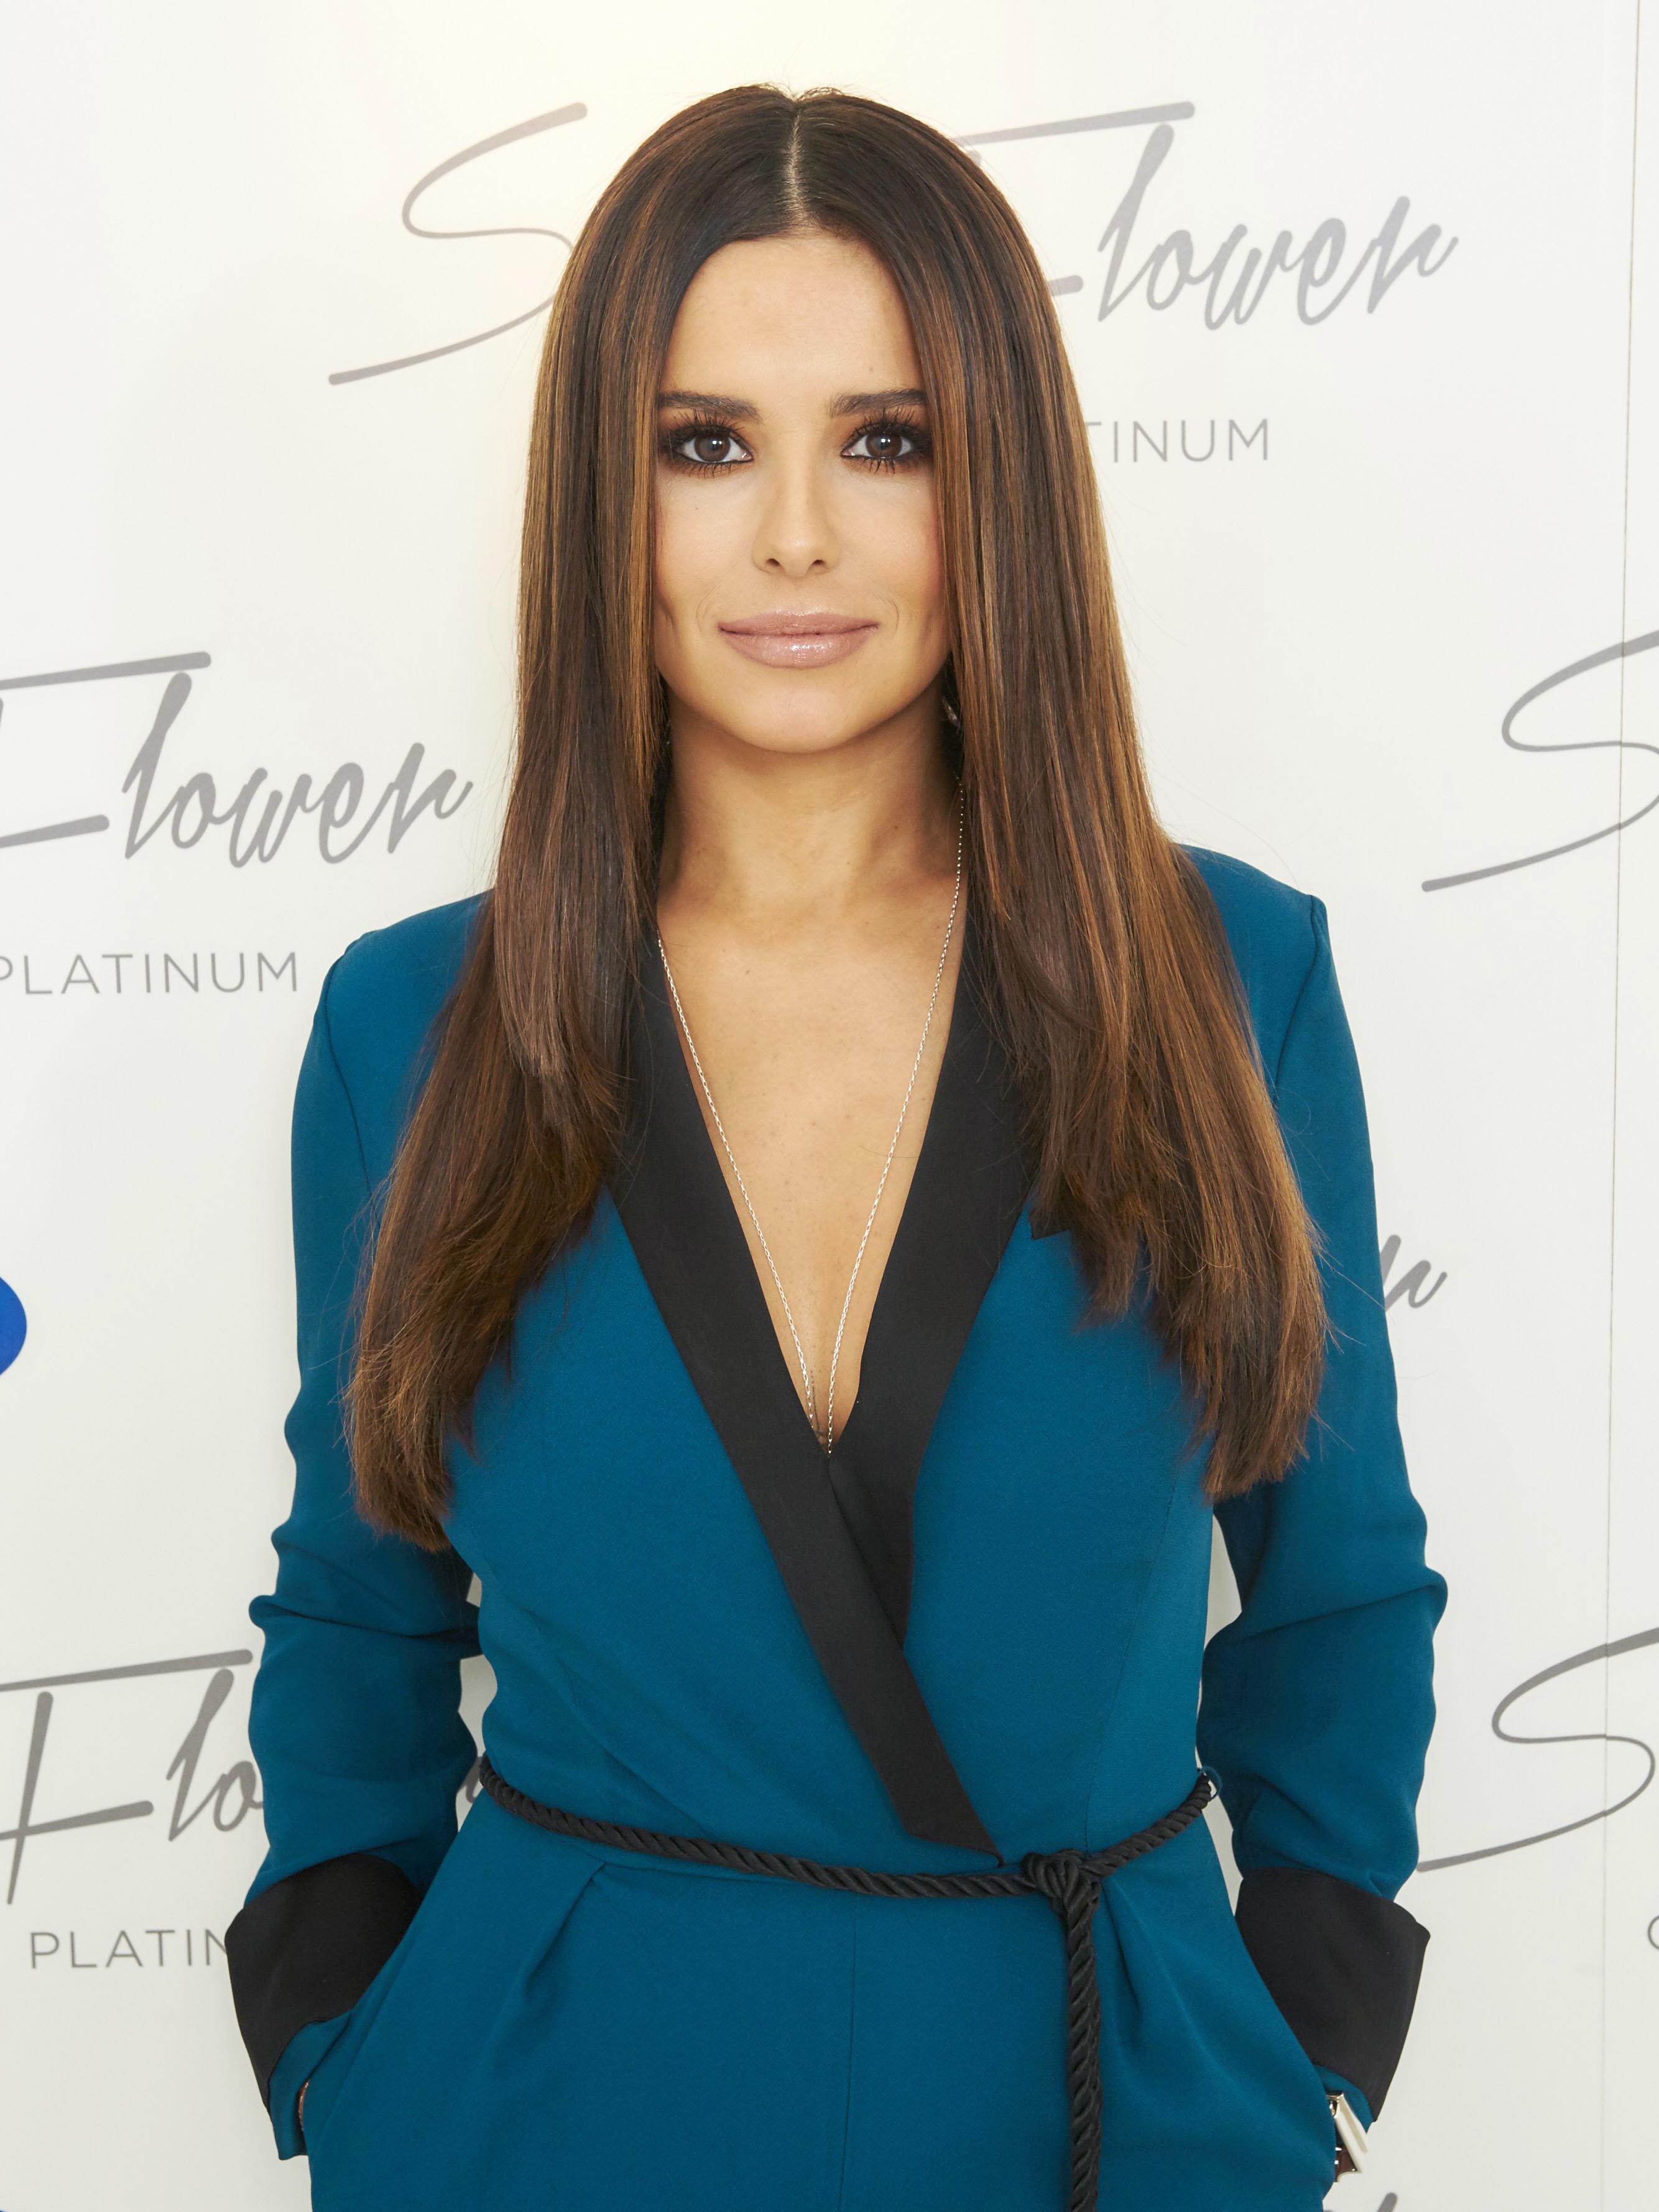 New mum Cheryl Cole making a HUGE musical comeback - find out everything!